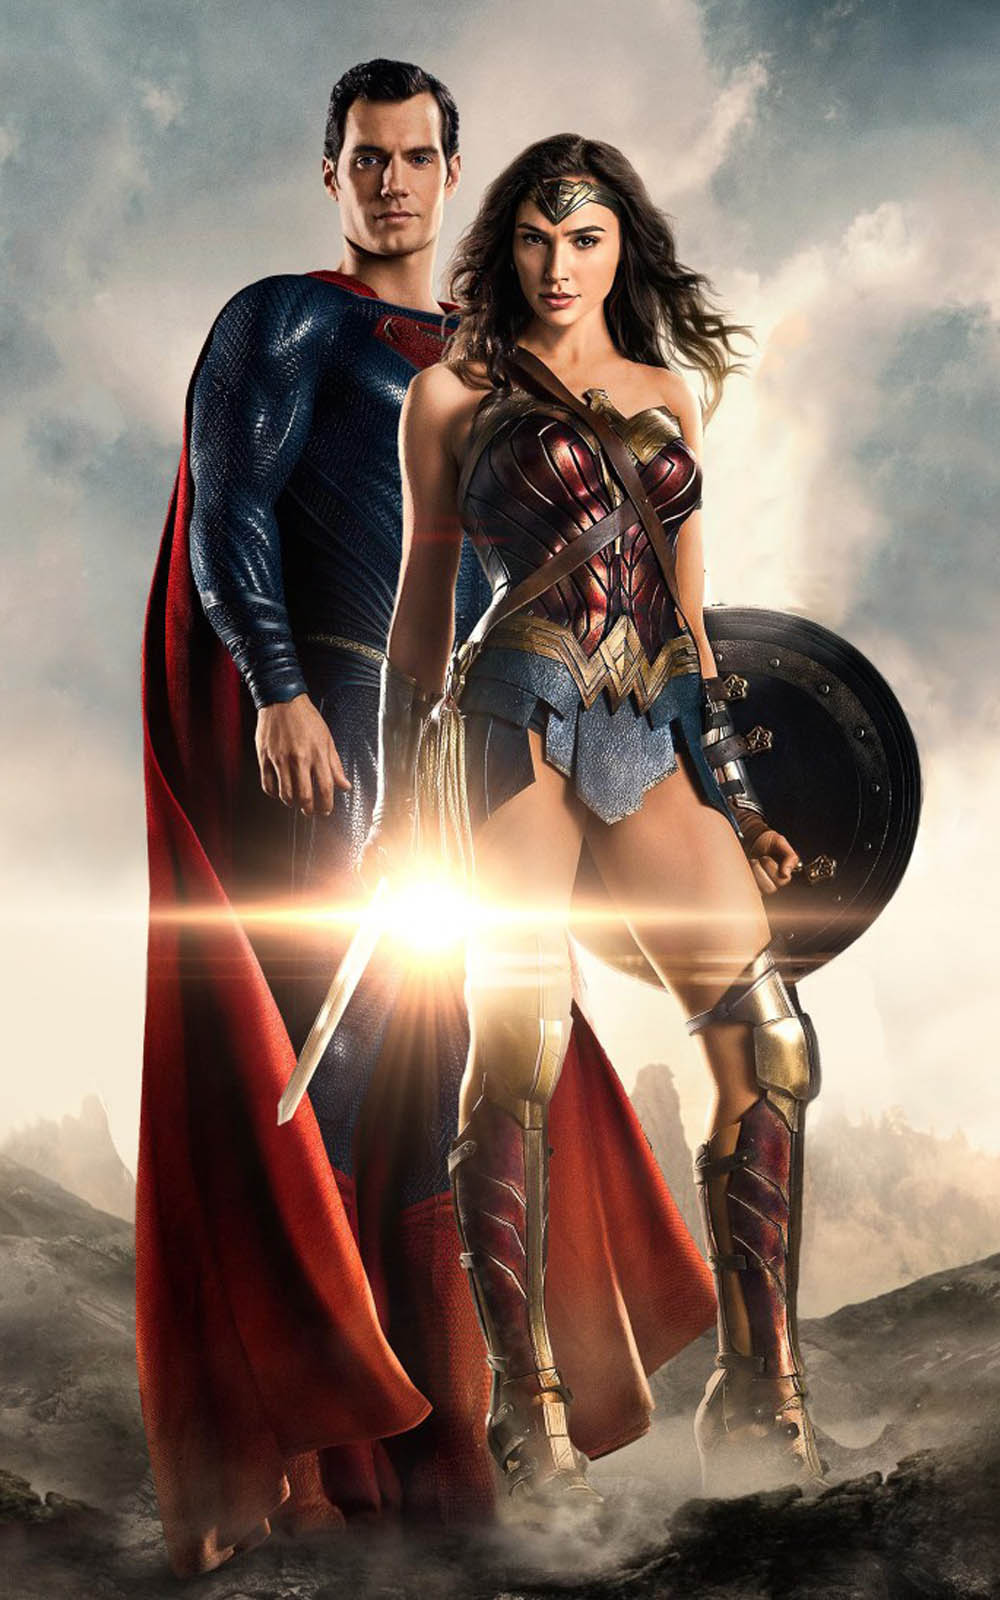 Superman And Wonder Woman In Justice League Free 4k Ultra Hd